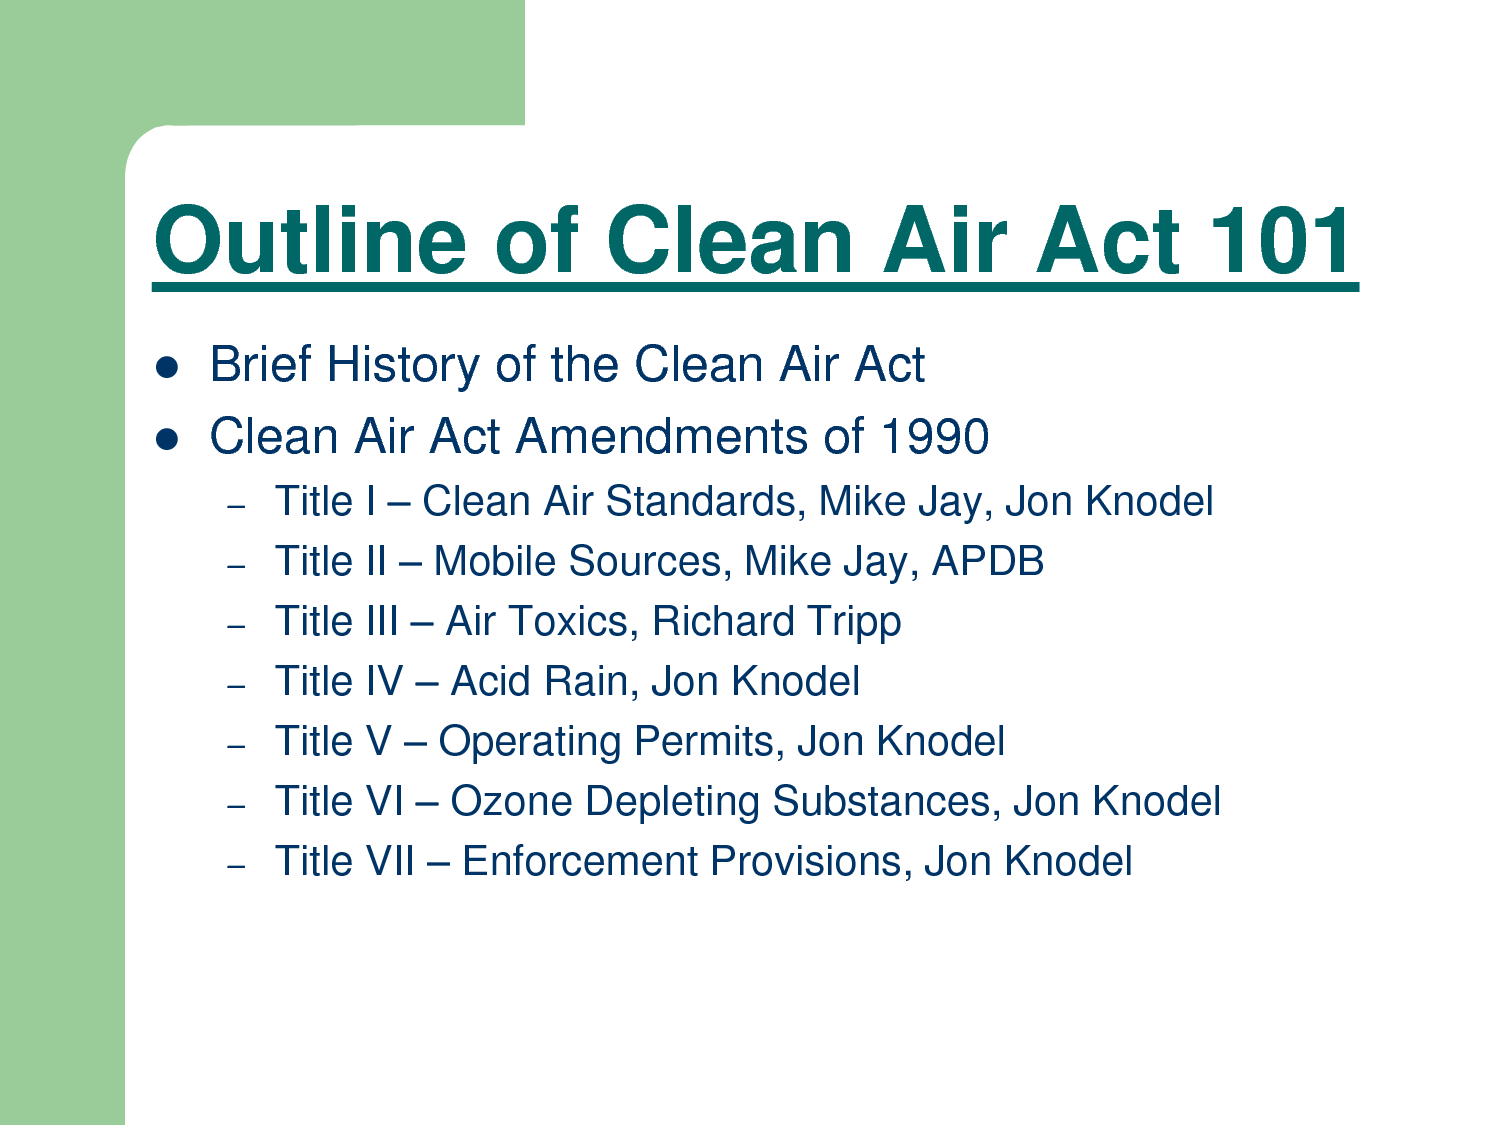 air act In 2004, epa took the position that it had no power under the federal clean air act to regulate greenhouse gas (ghg) pollution, forcing massachusetts, california and other states to file suit in april 2007, the us supreme court ruled that greenhouse gases are air pollutants under the clean air act.